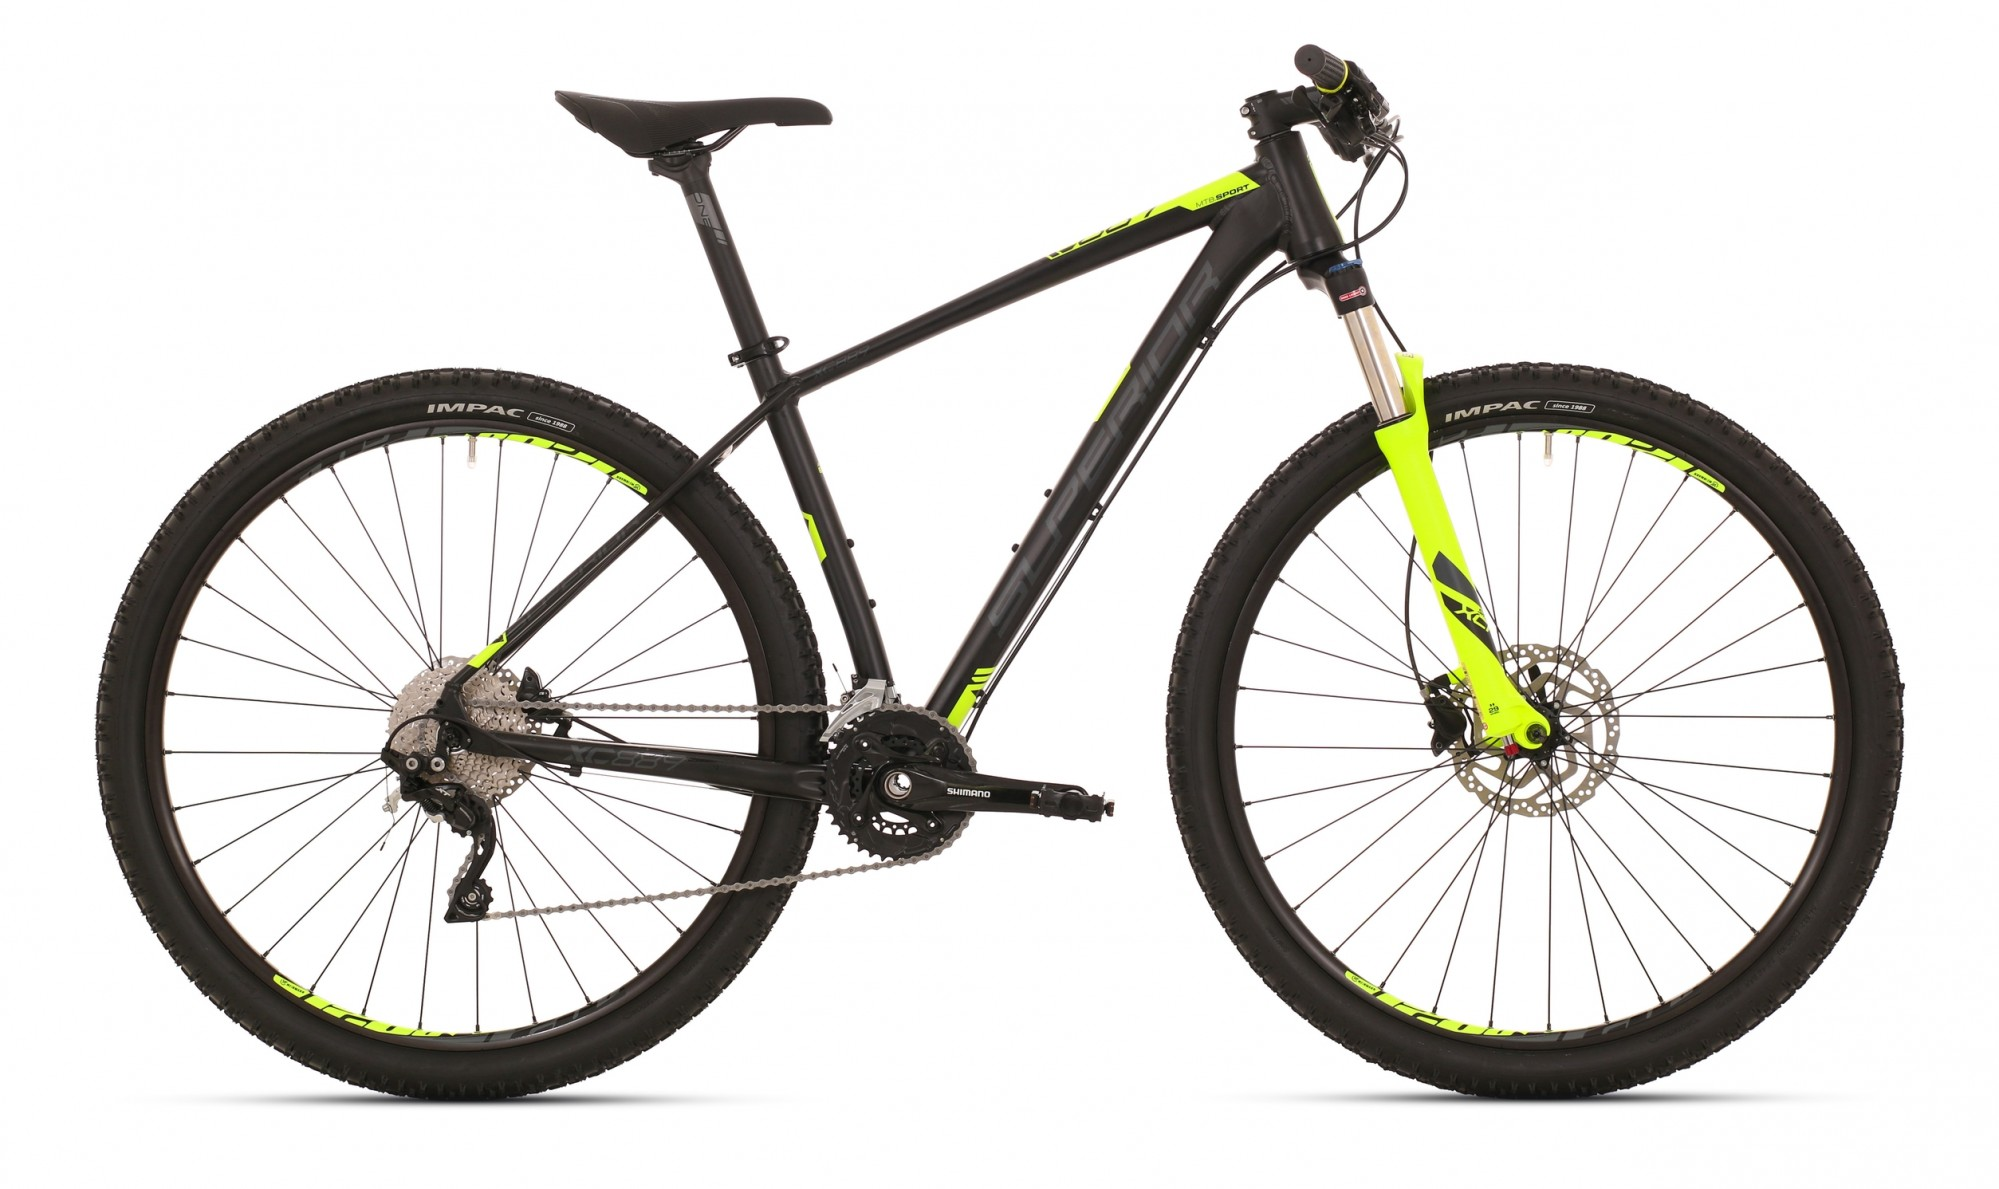 Superior XC 889 ALU Matte Black Neon Yellow 2x10